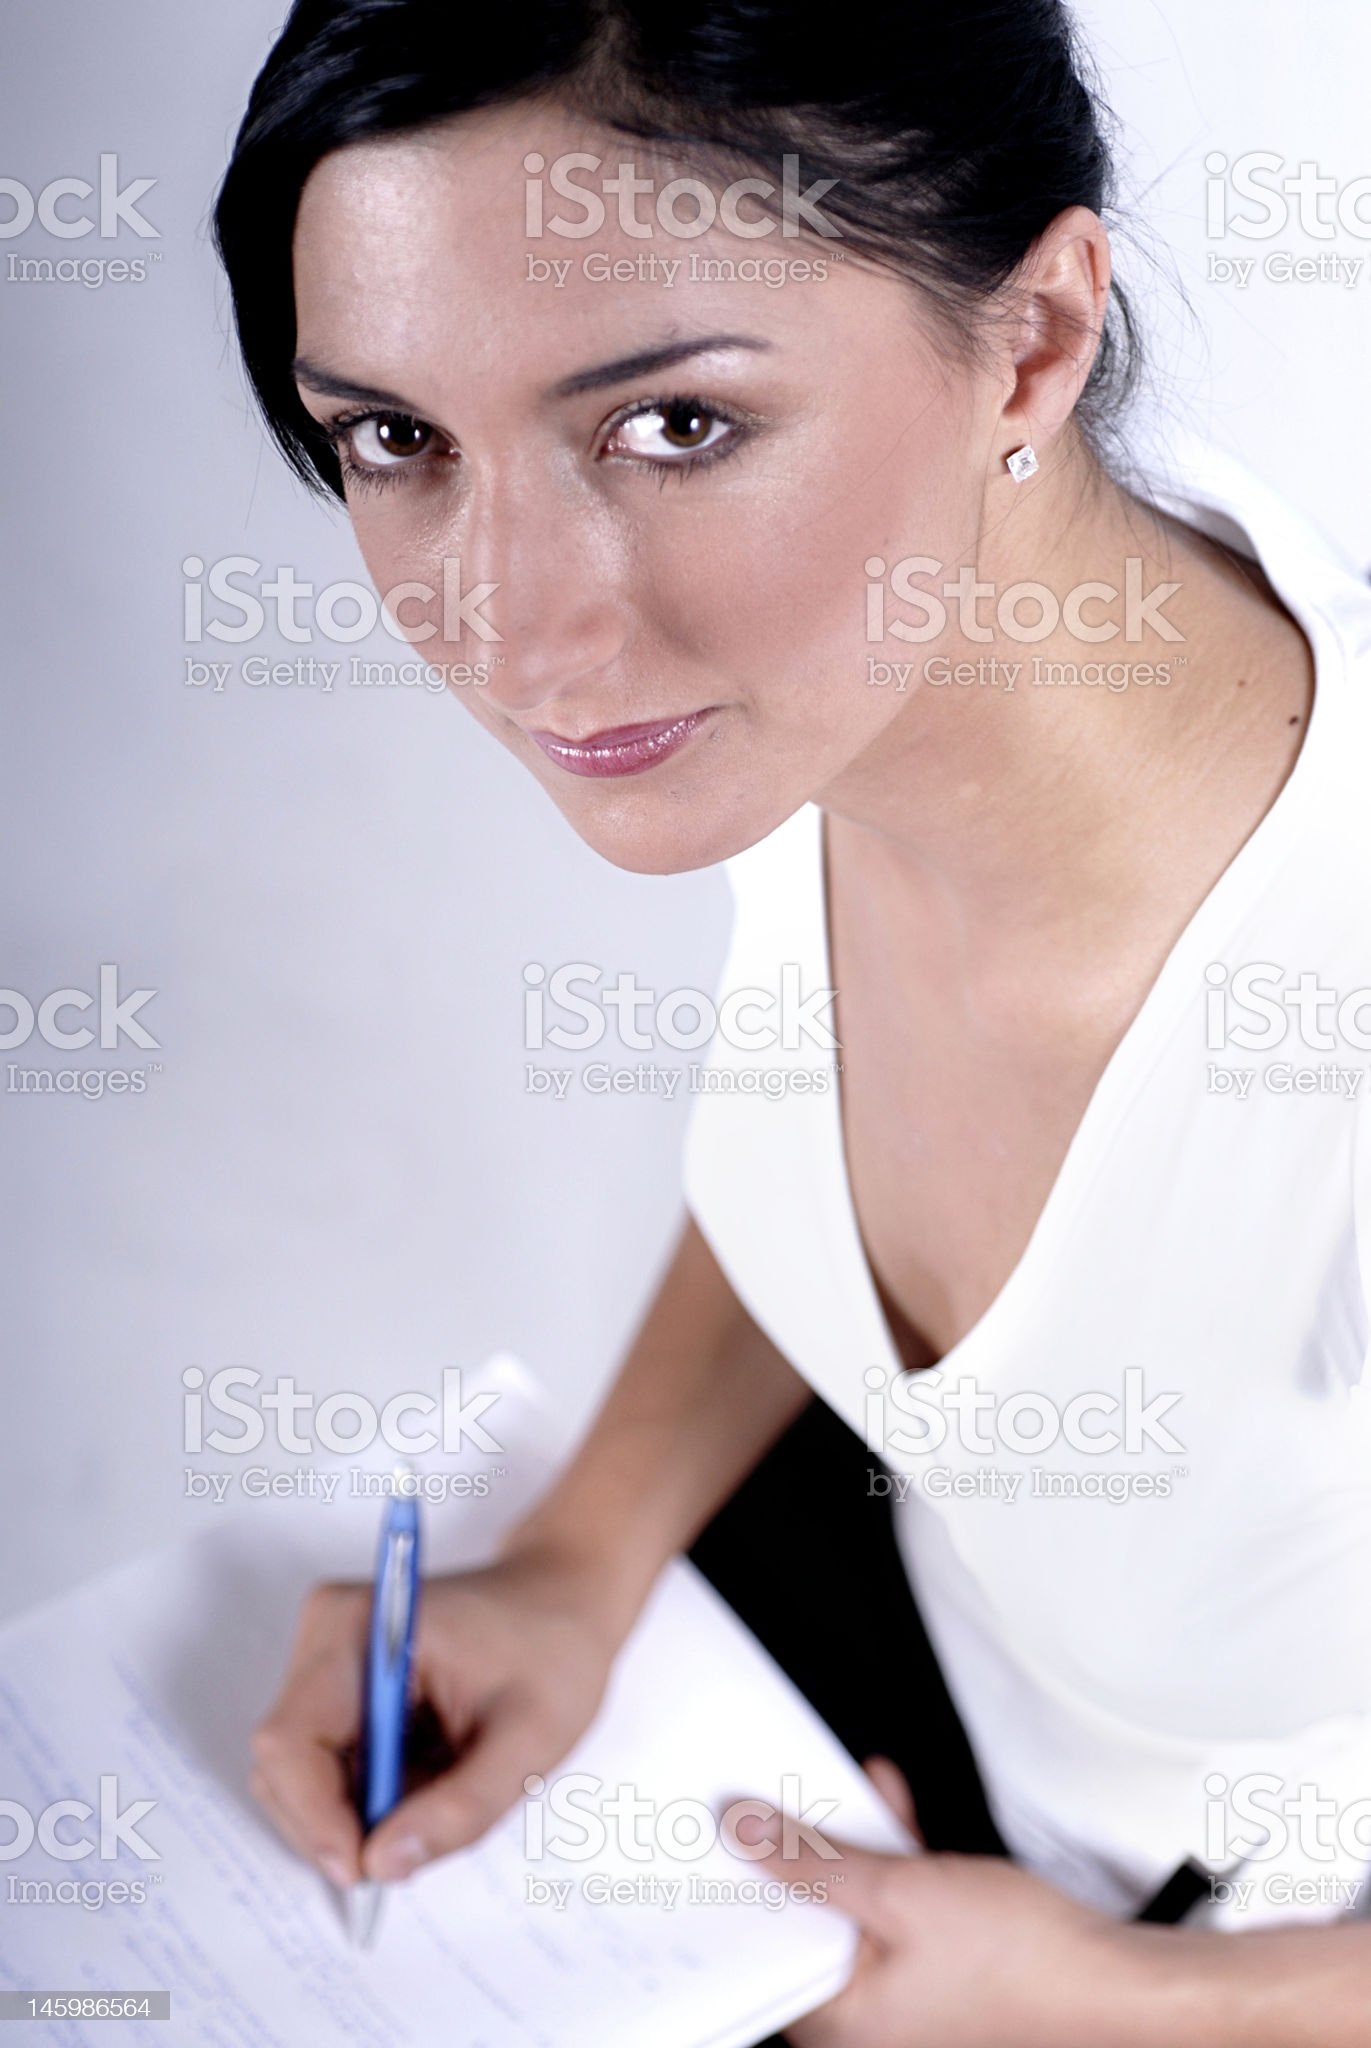 Making a notes royalty-free stock photo